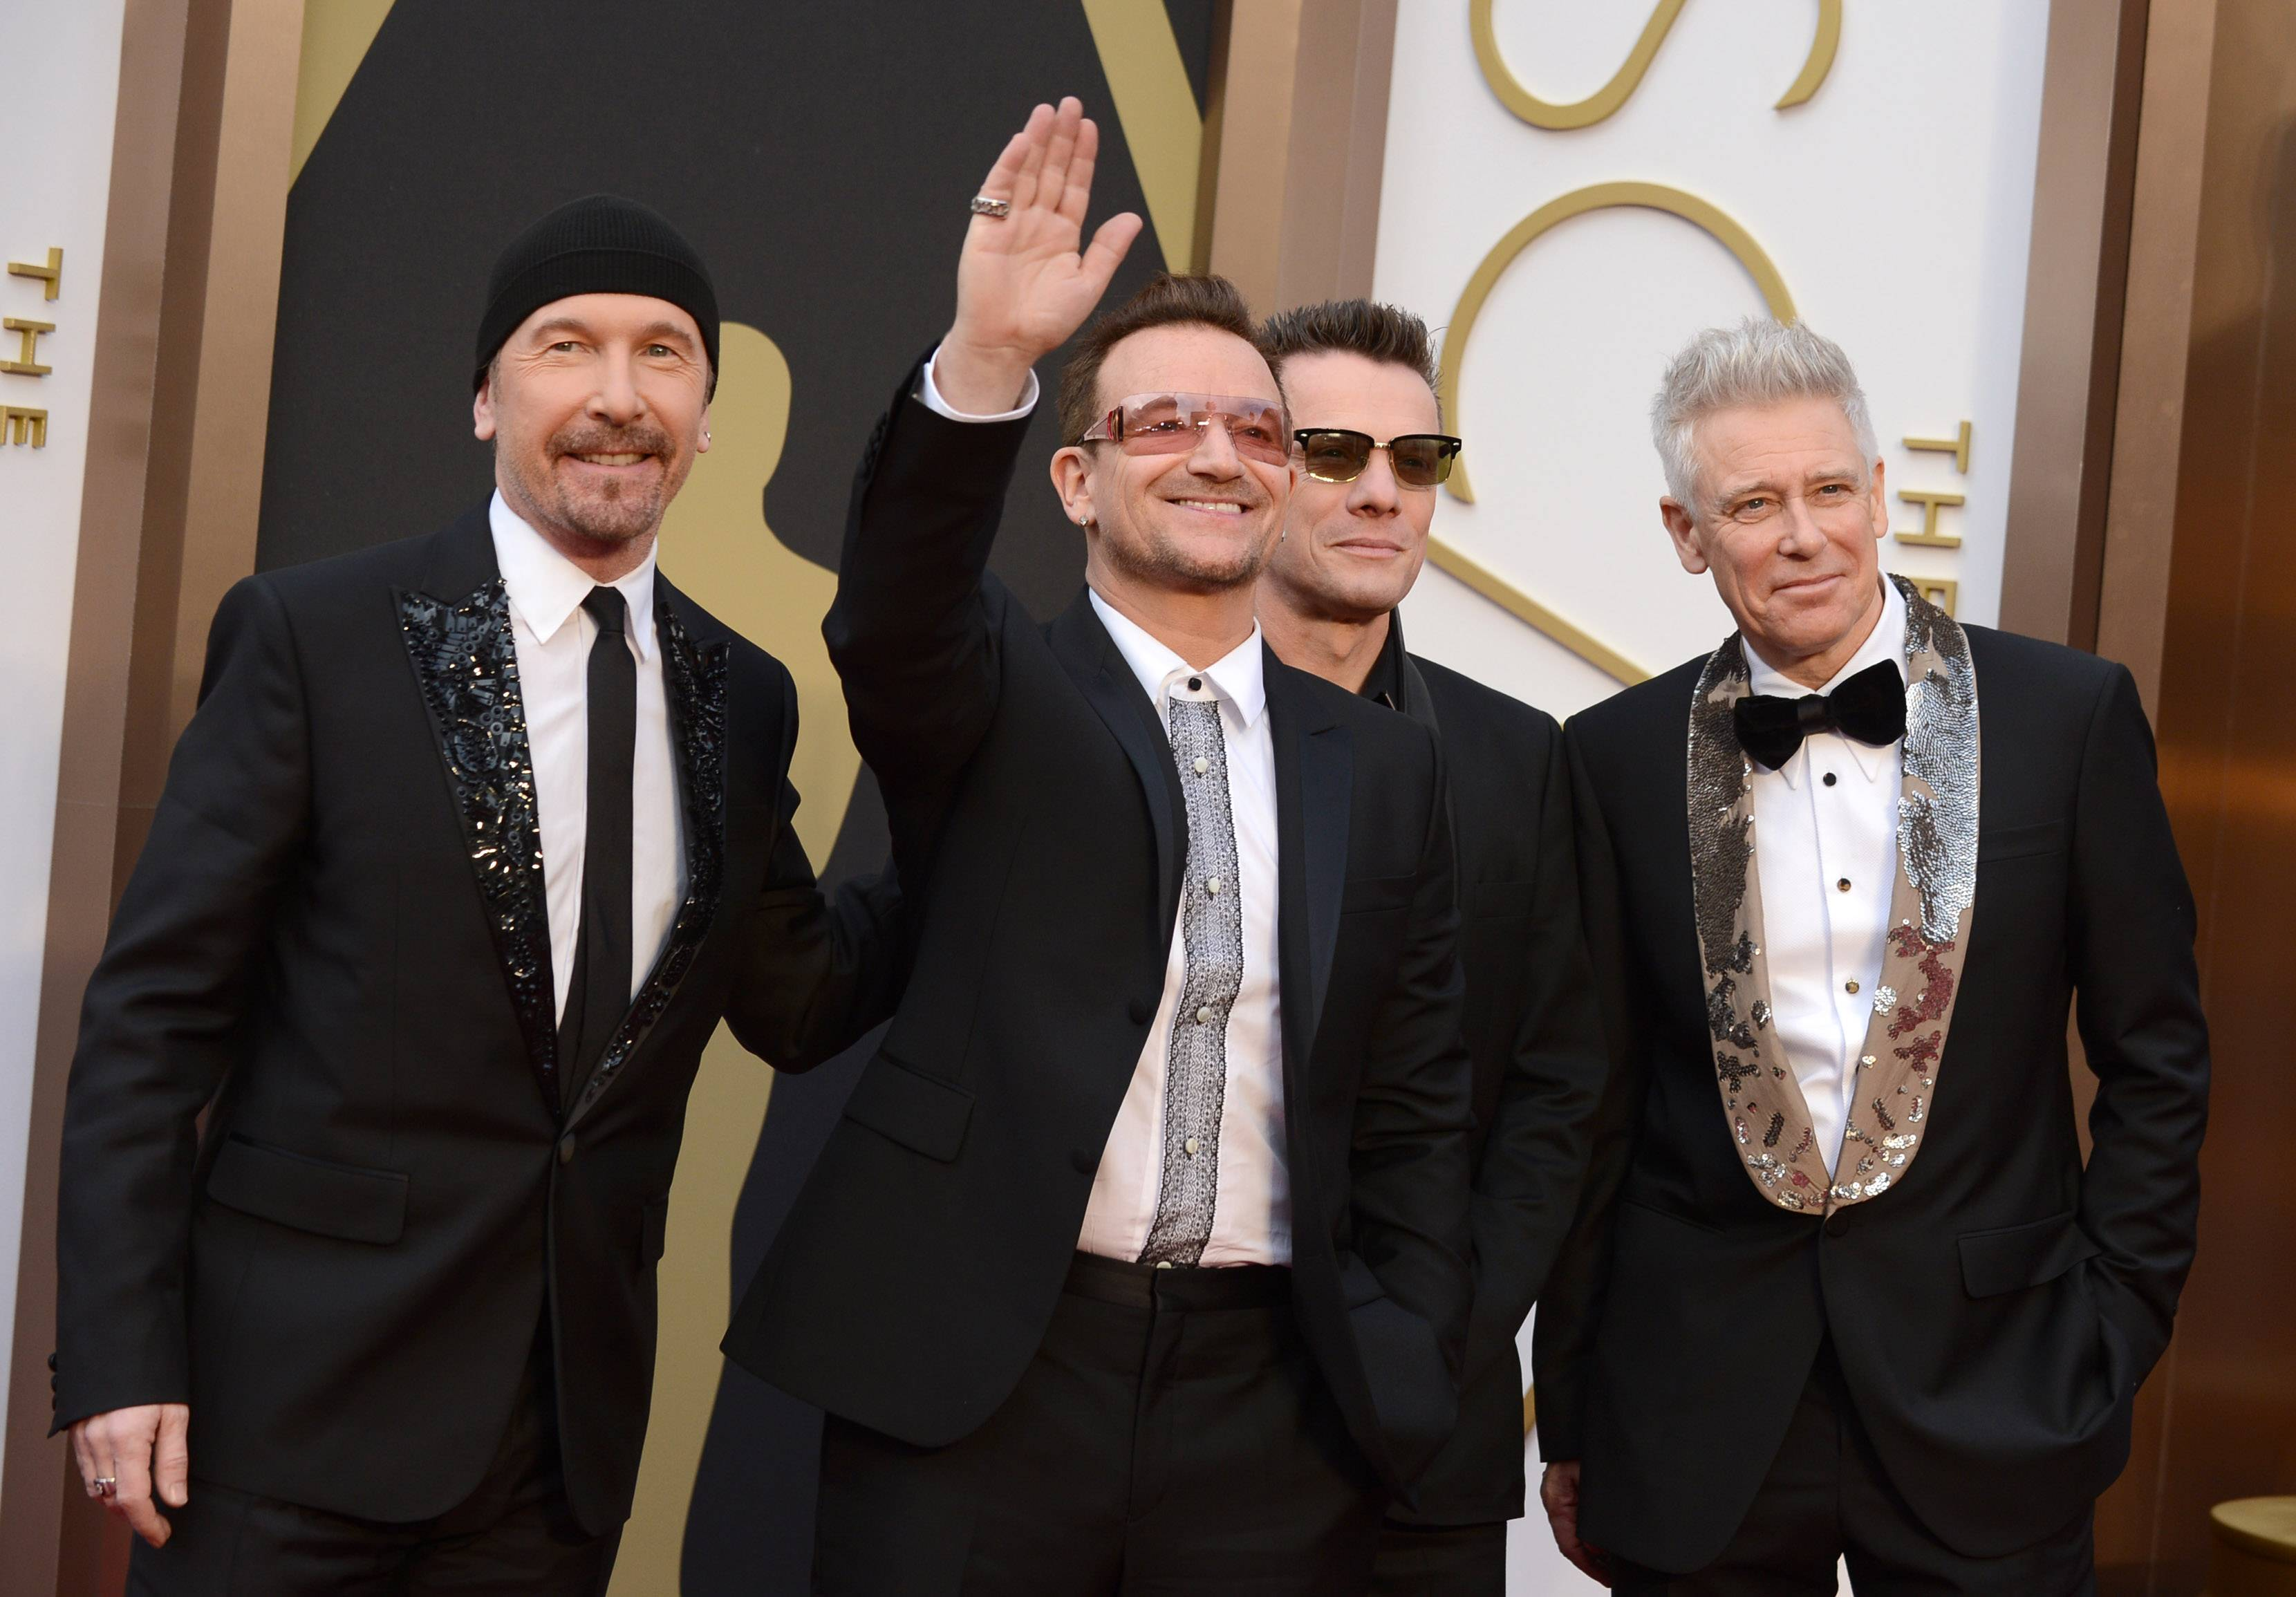 The Edge, from left, Bono, Larry Mullen, Jr., and Adam Clayton of U2 arrive at the Oscars on Sunday.